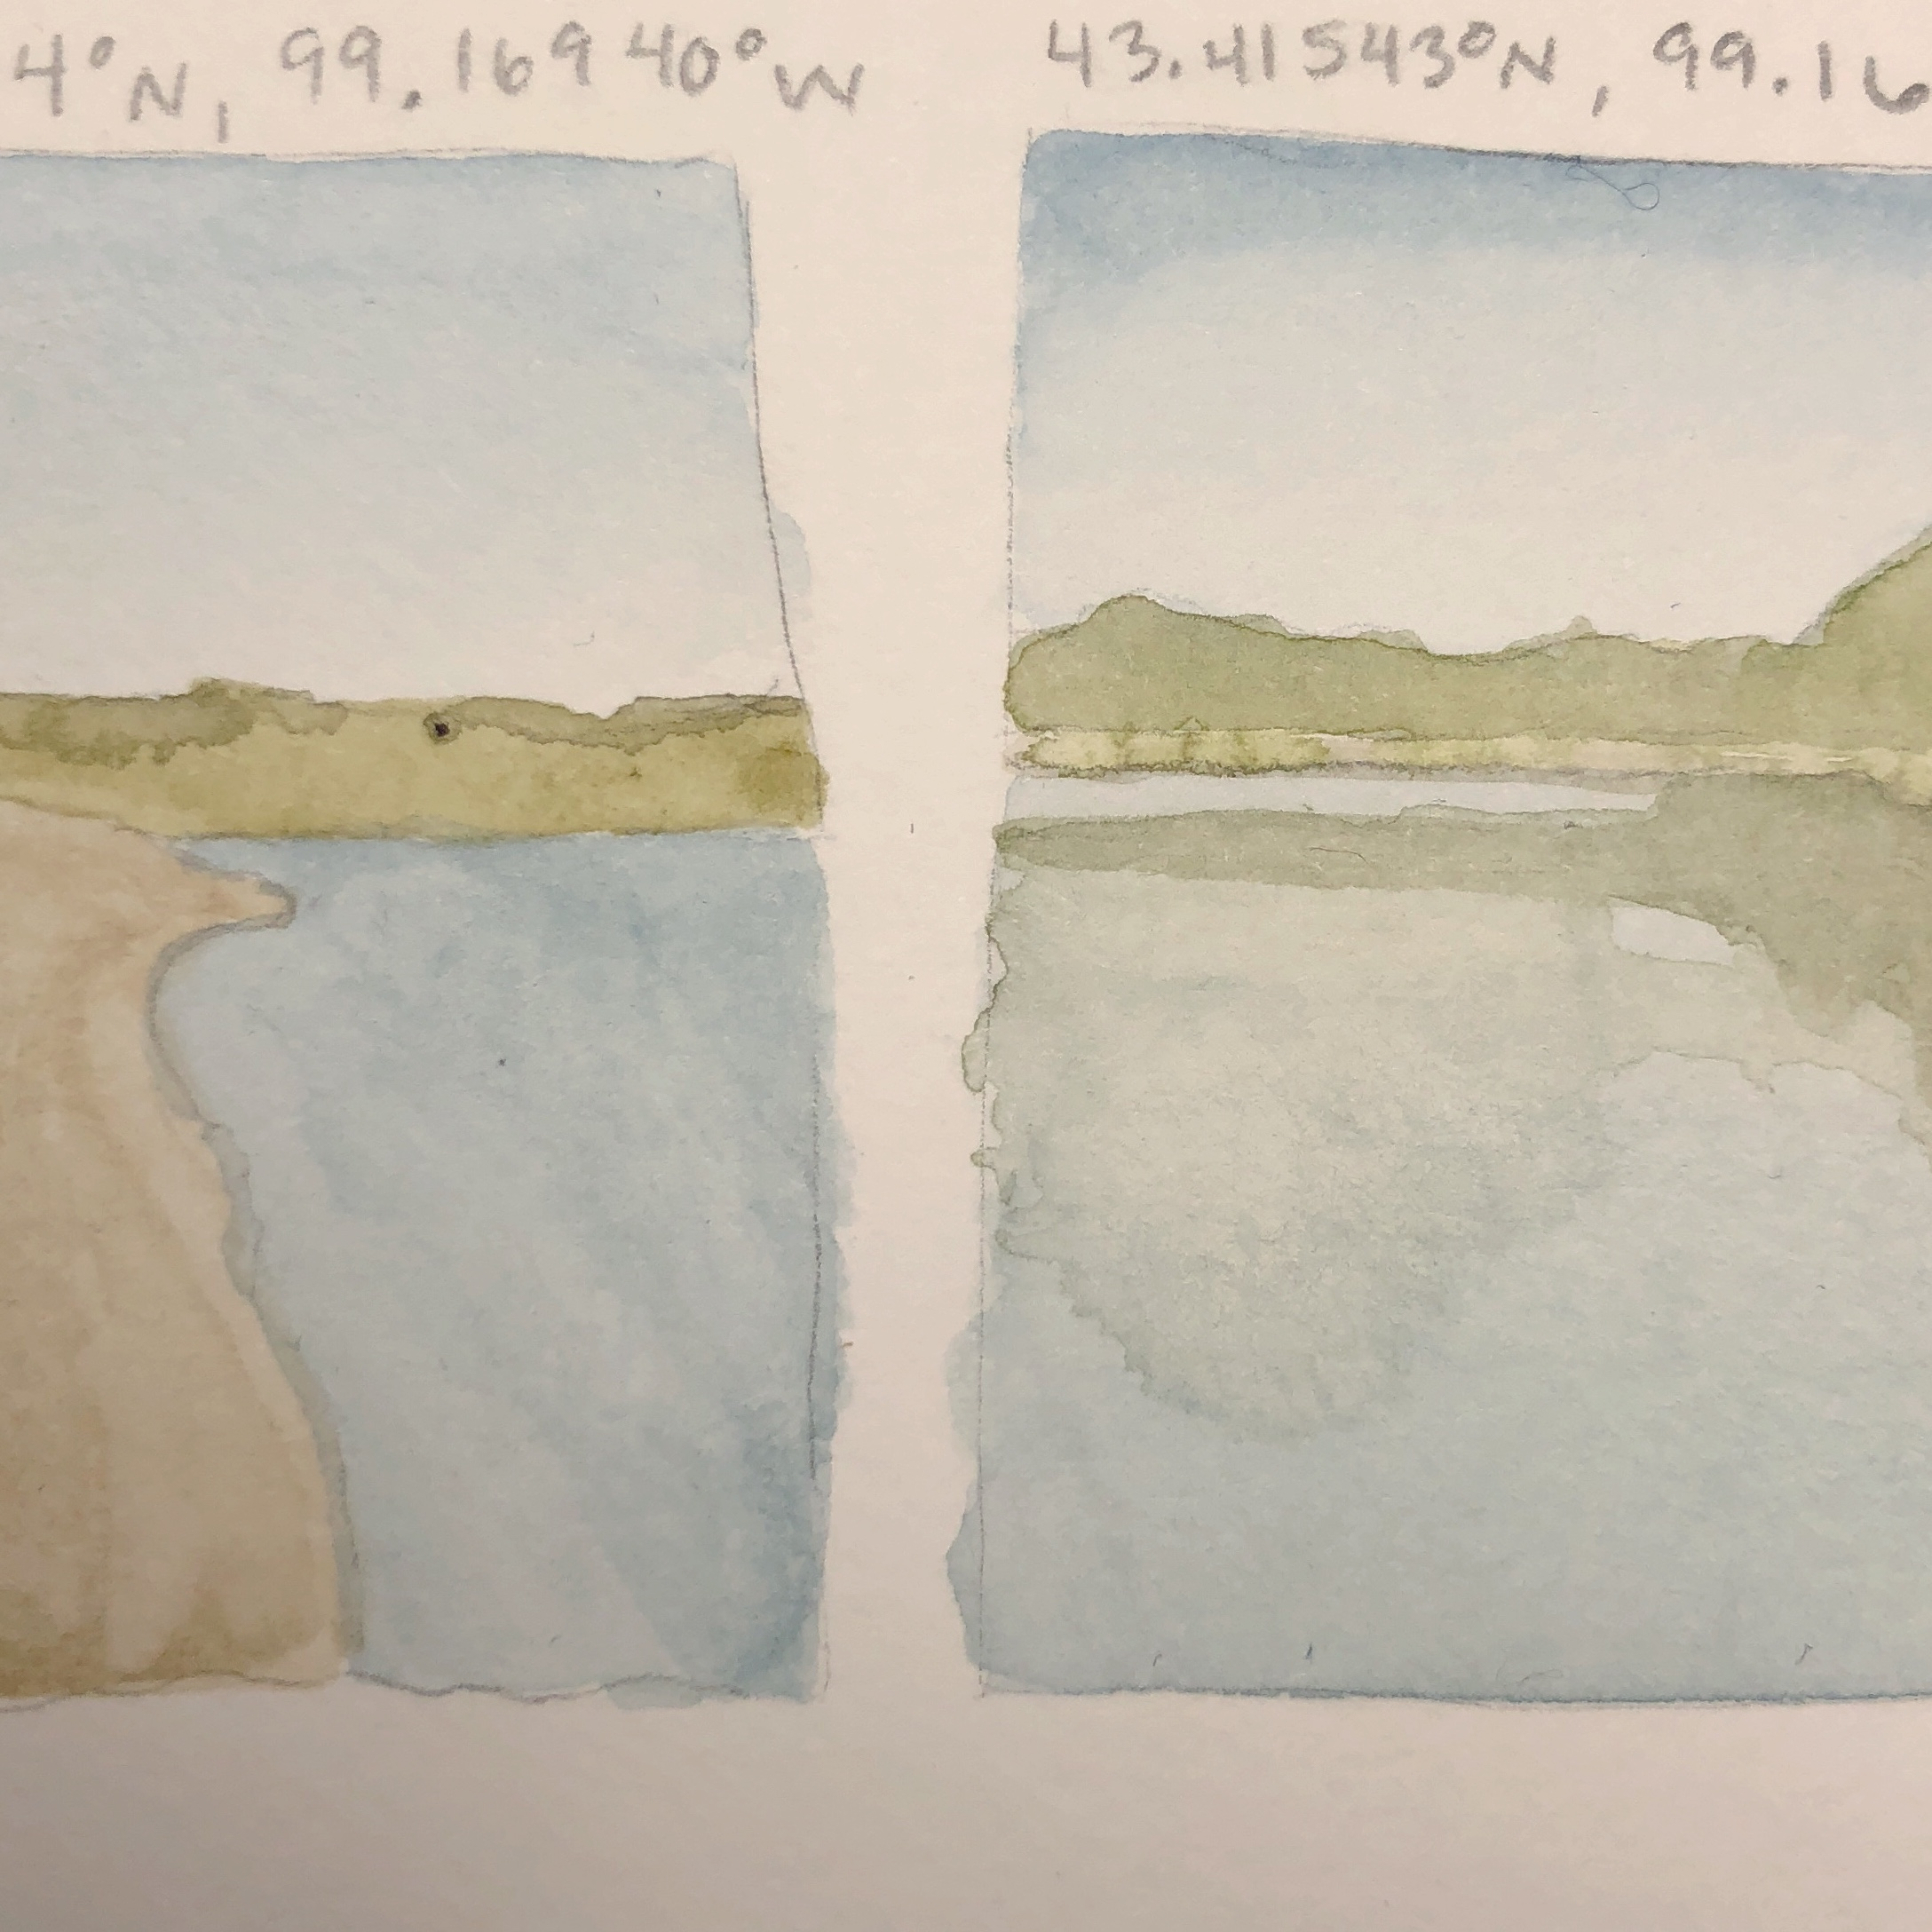 Sketches from Buryanek Recreation Area